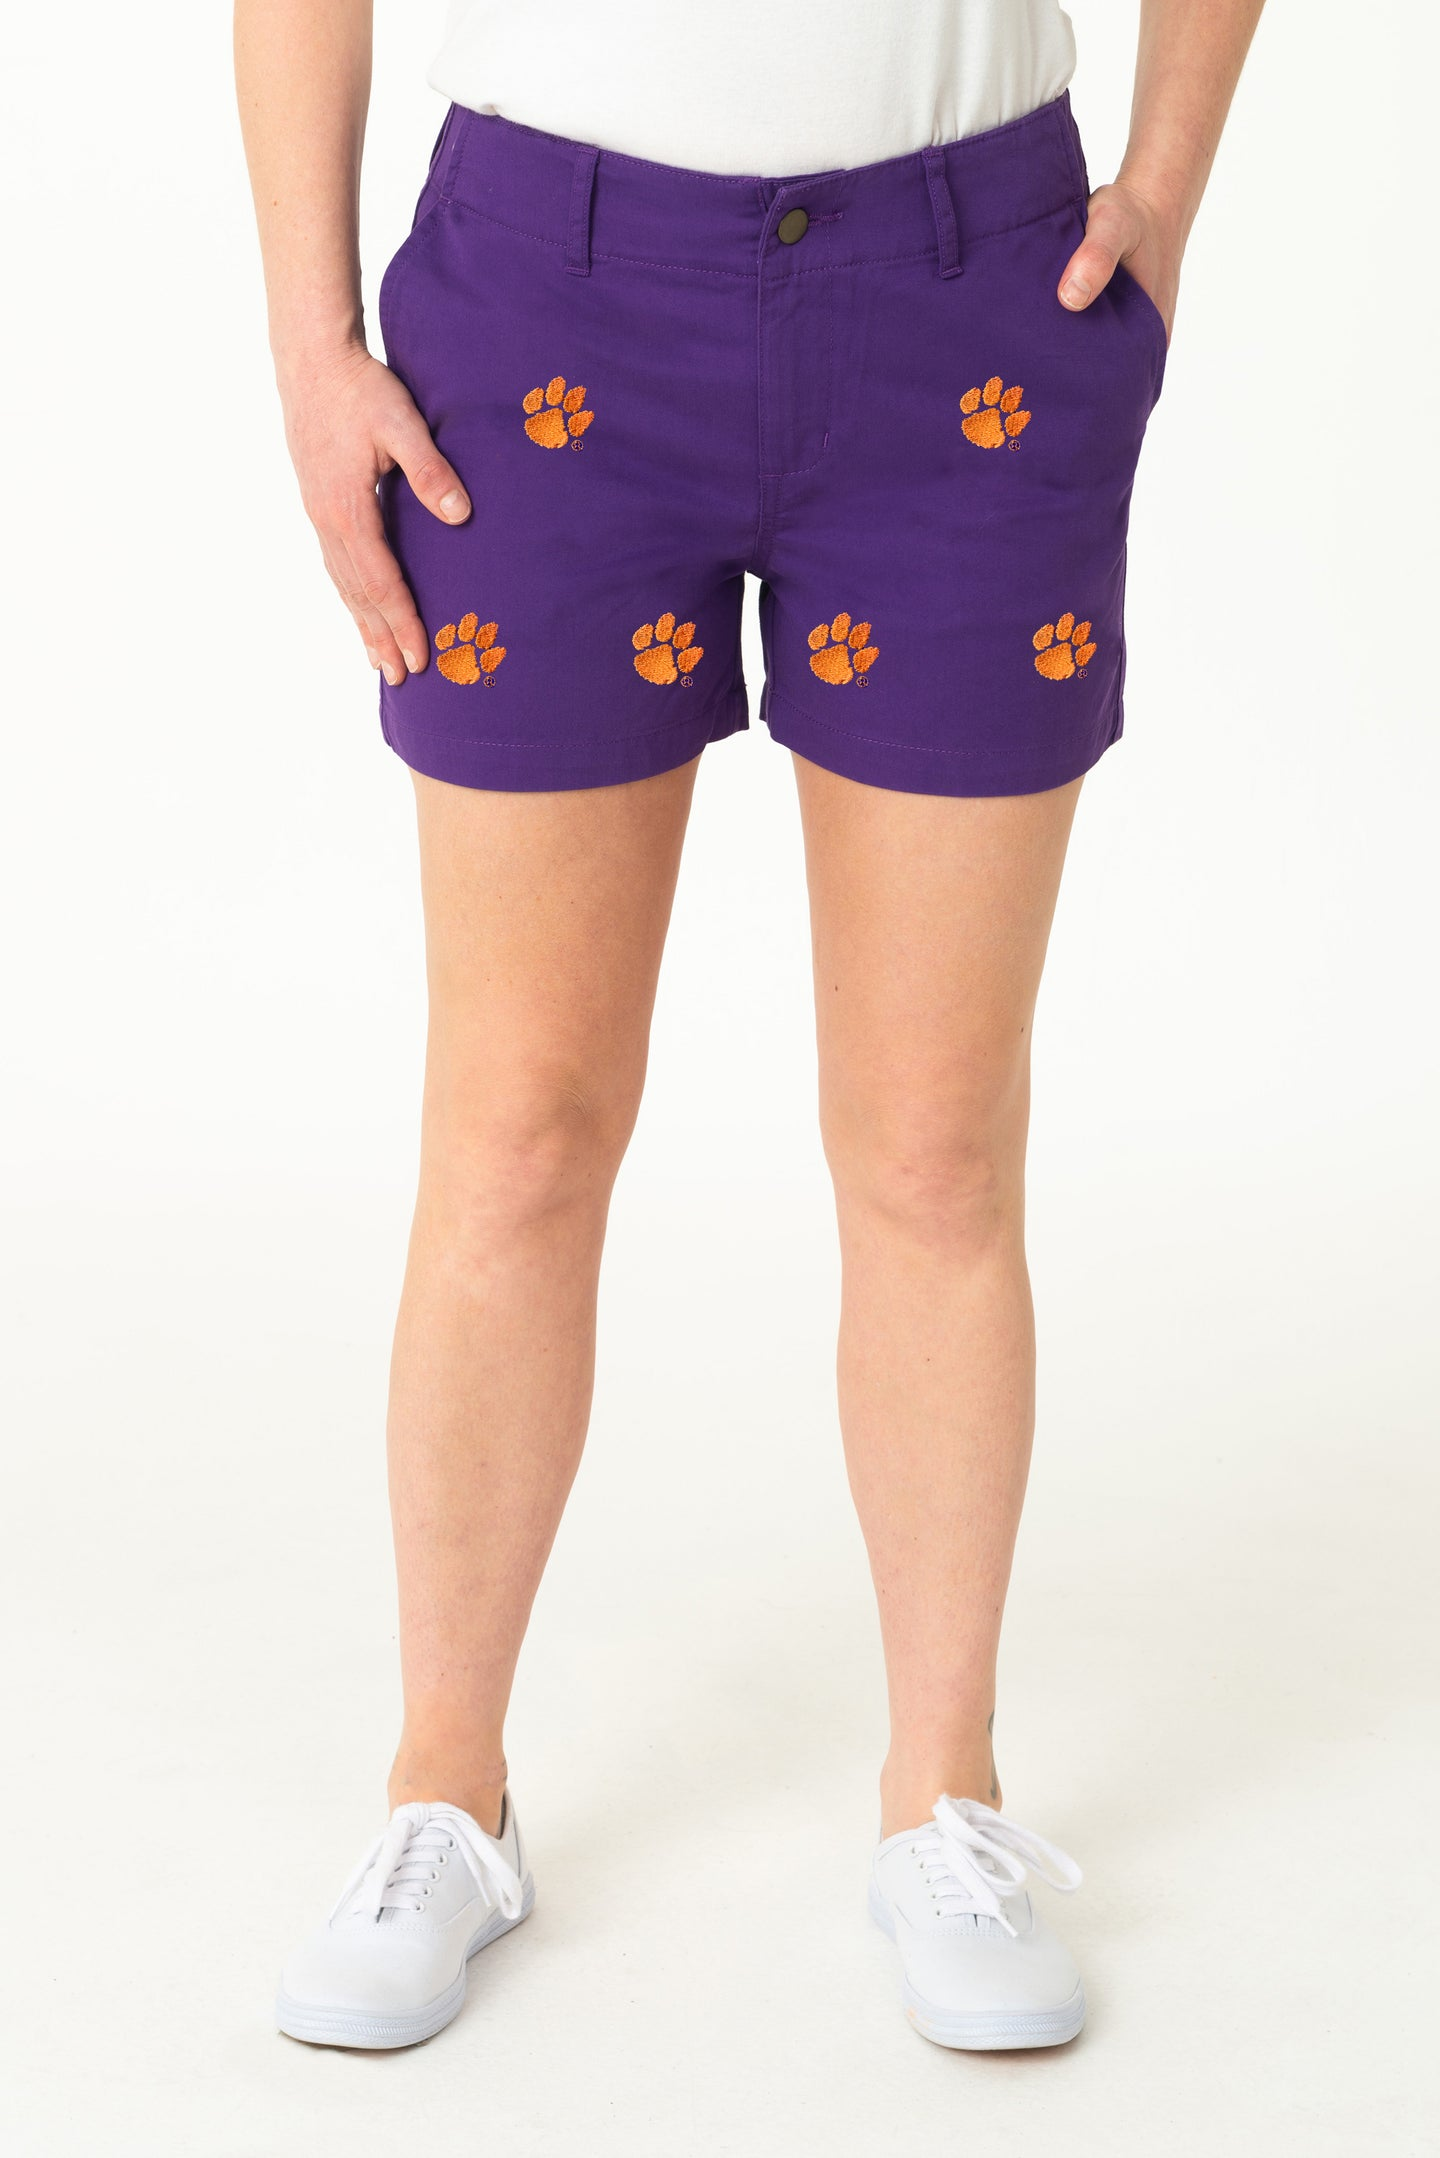 Clemson Women's Purple Short